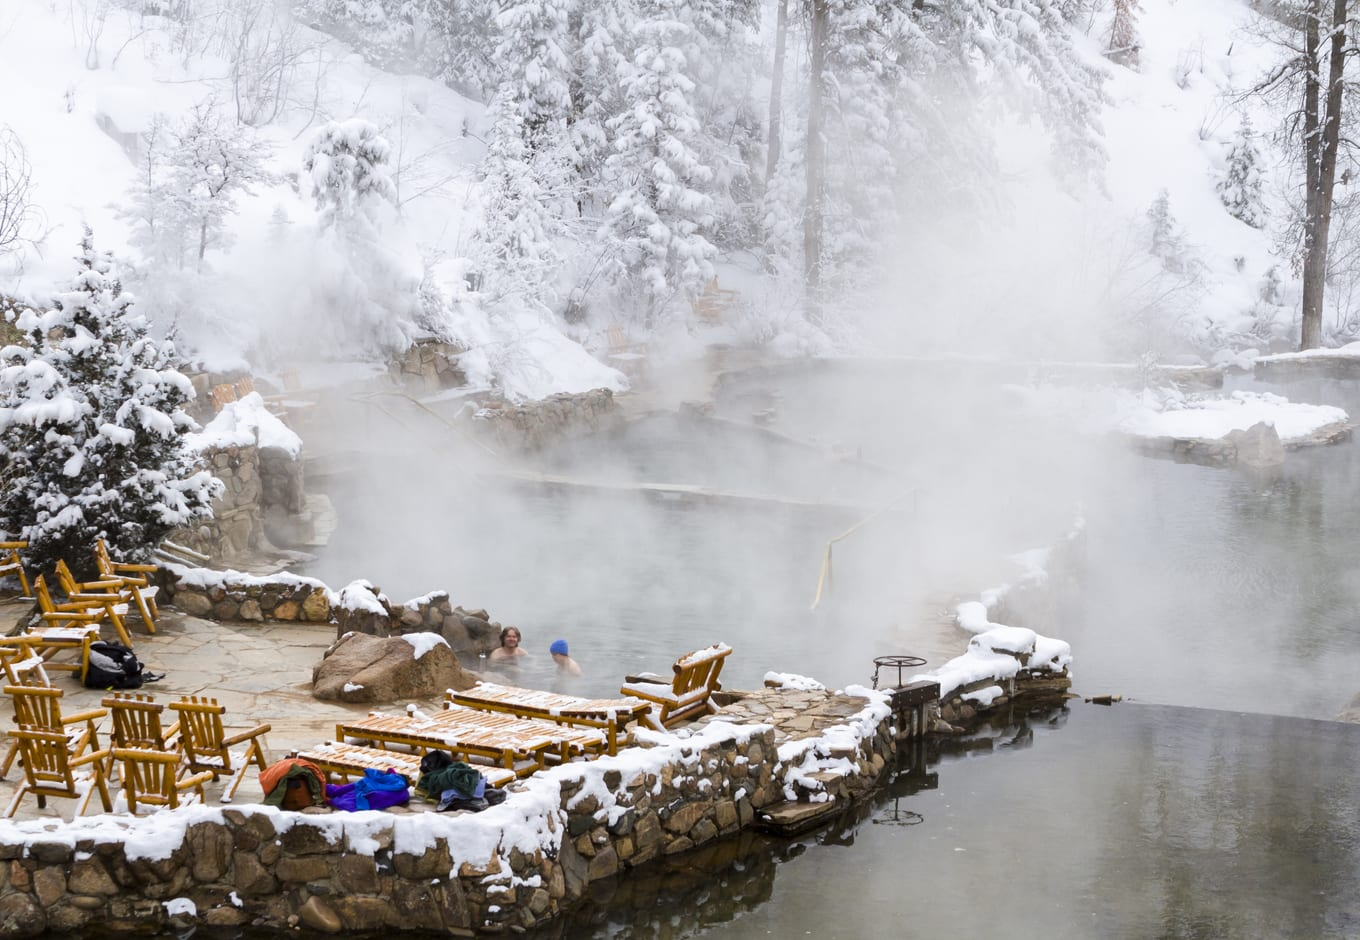 Strawberry Hot Springs, in Steamboat Springs, surrounded by a winter forest.